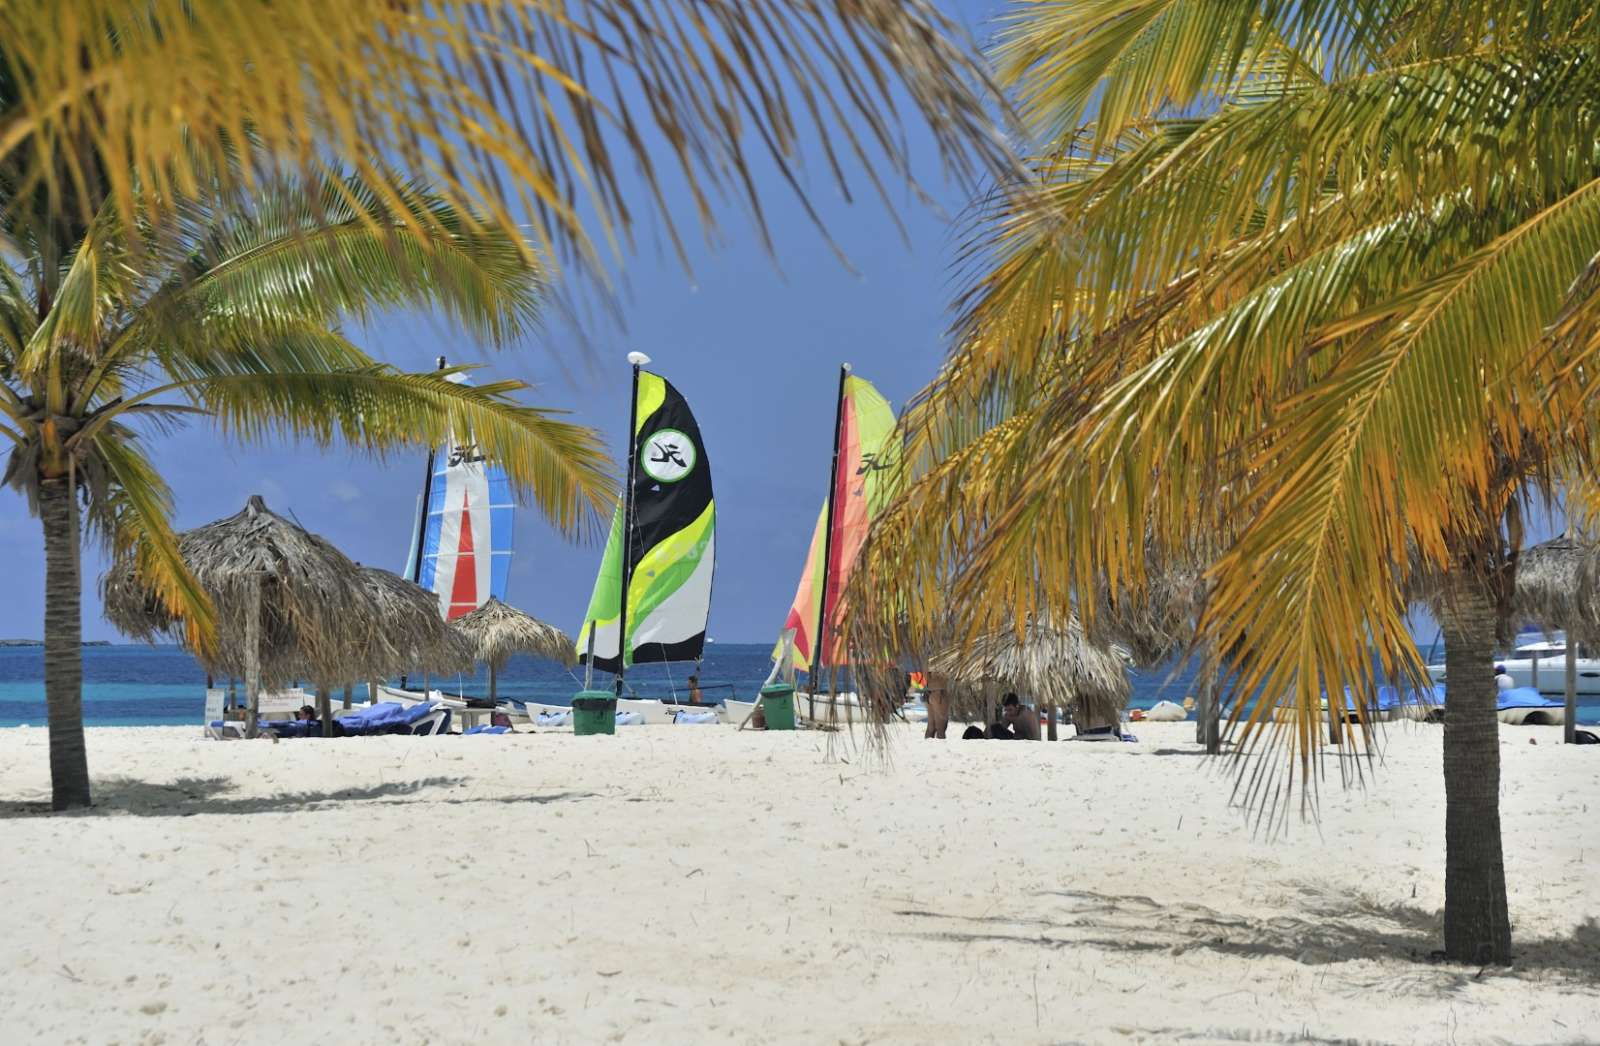 Watersports at Sol Cayo Largo